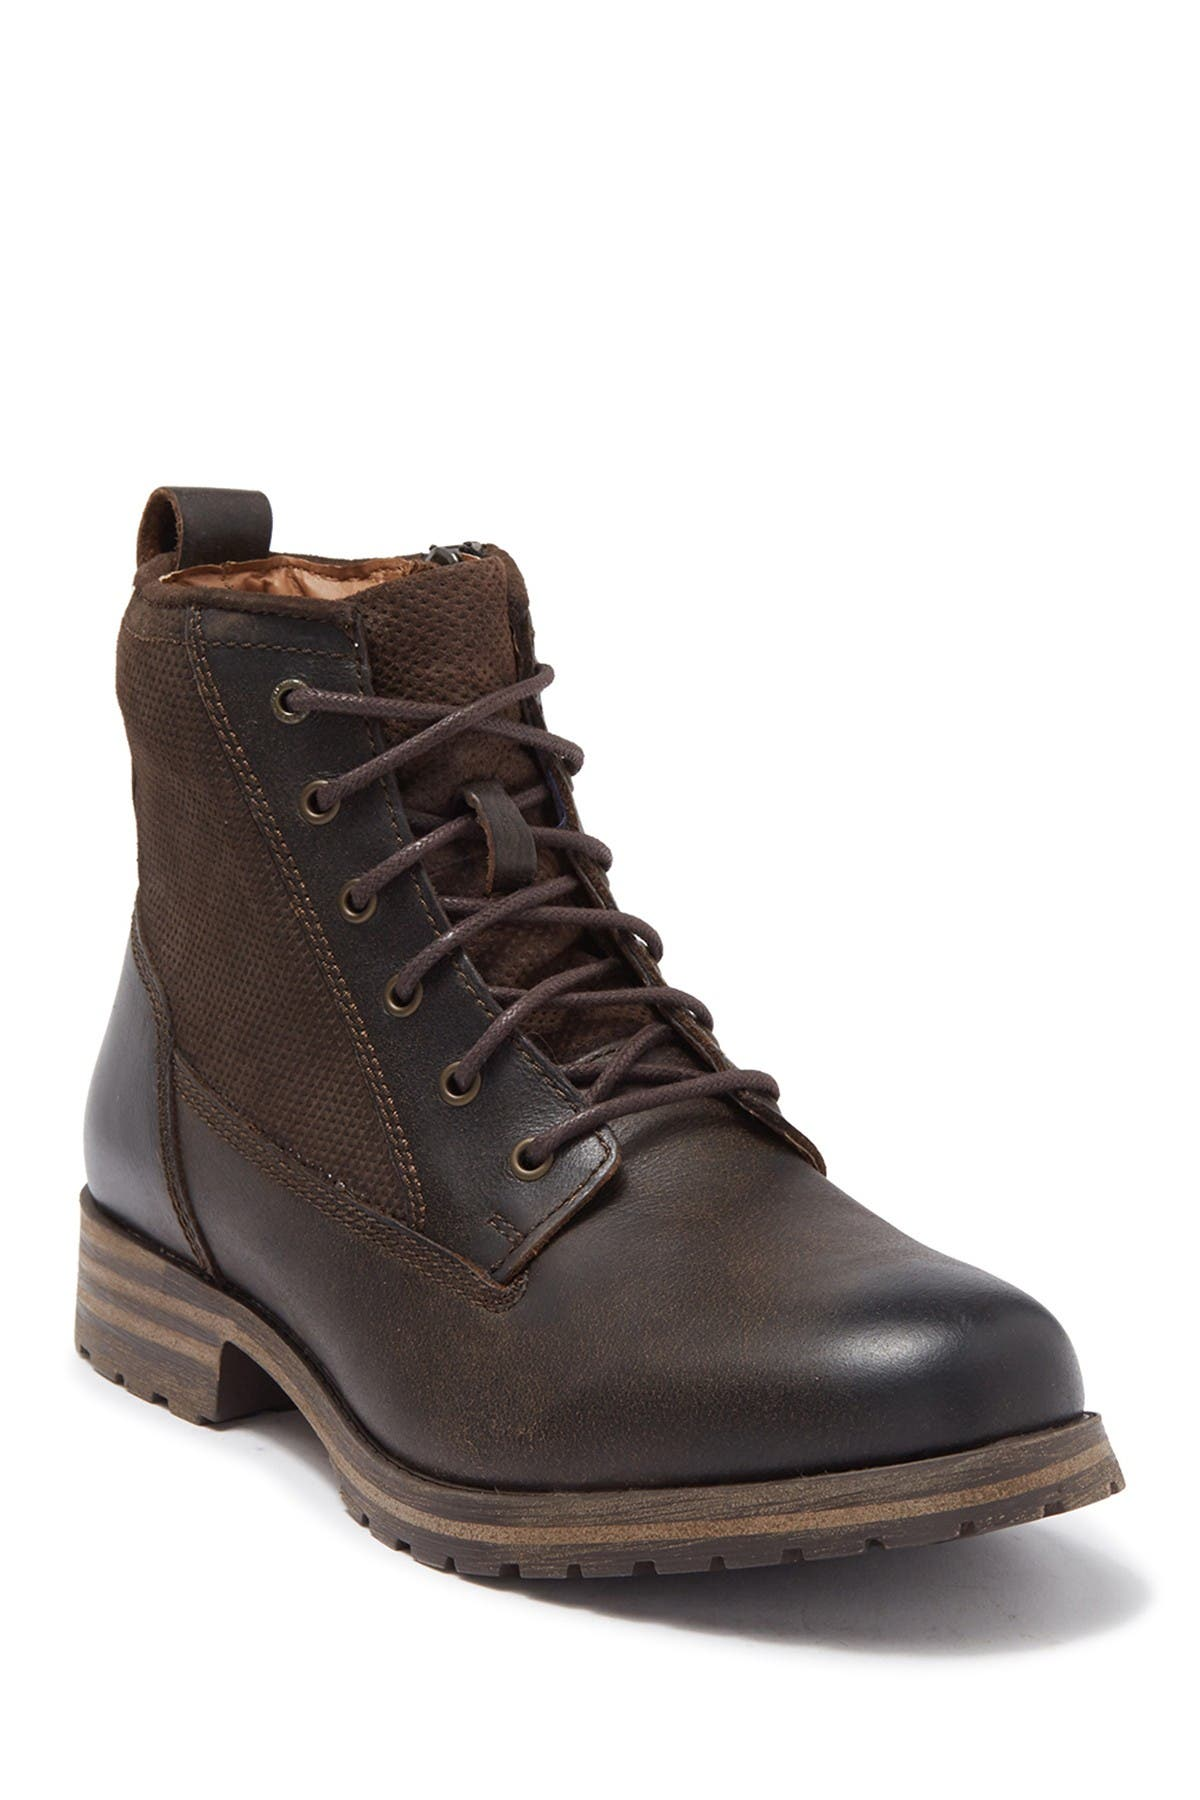 Image of Lucky Brand Gaston Leather Boot